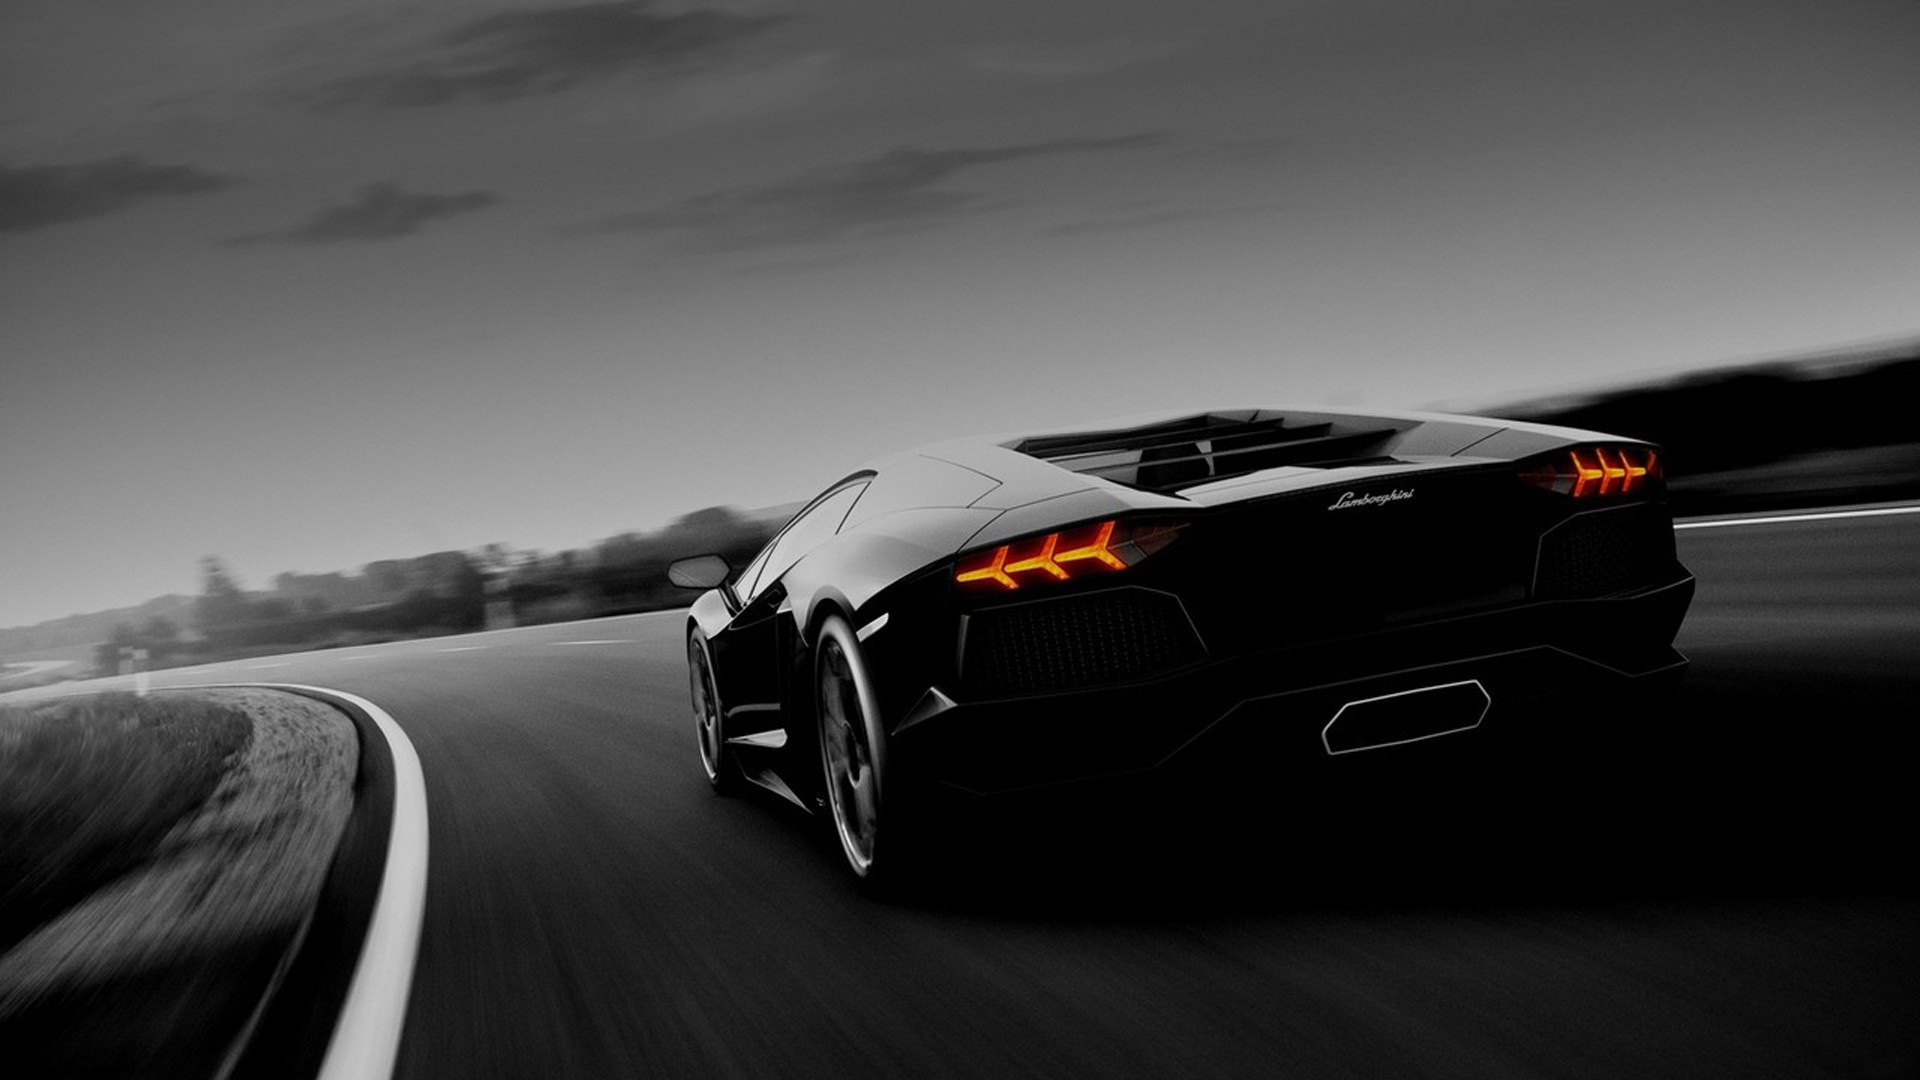 Lamborghini Aventador Wallpaper Hd wallpaper   829543 1920x1080